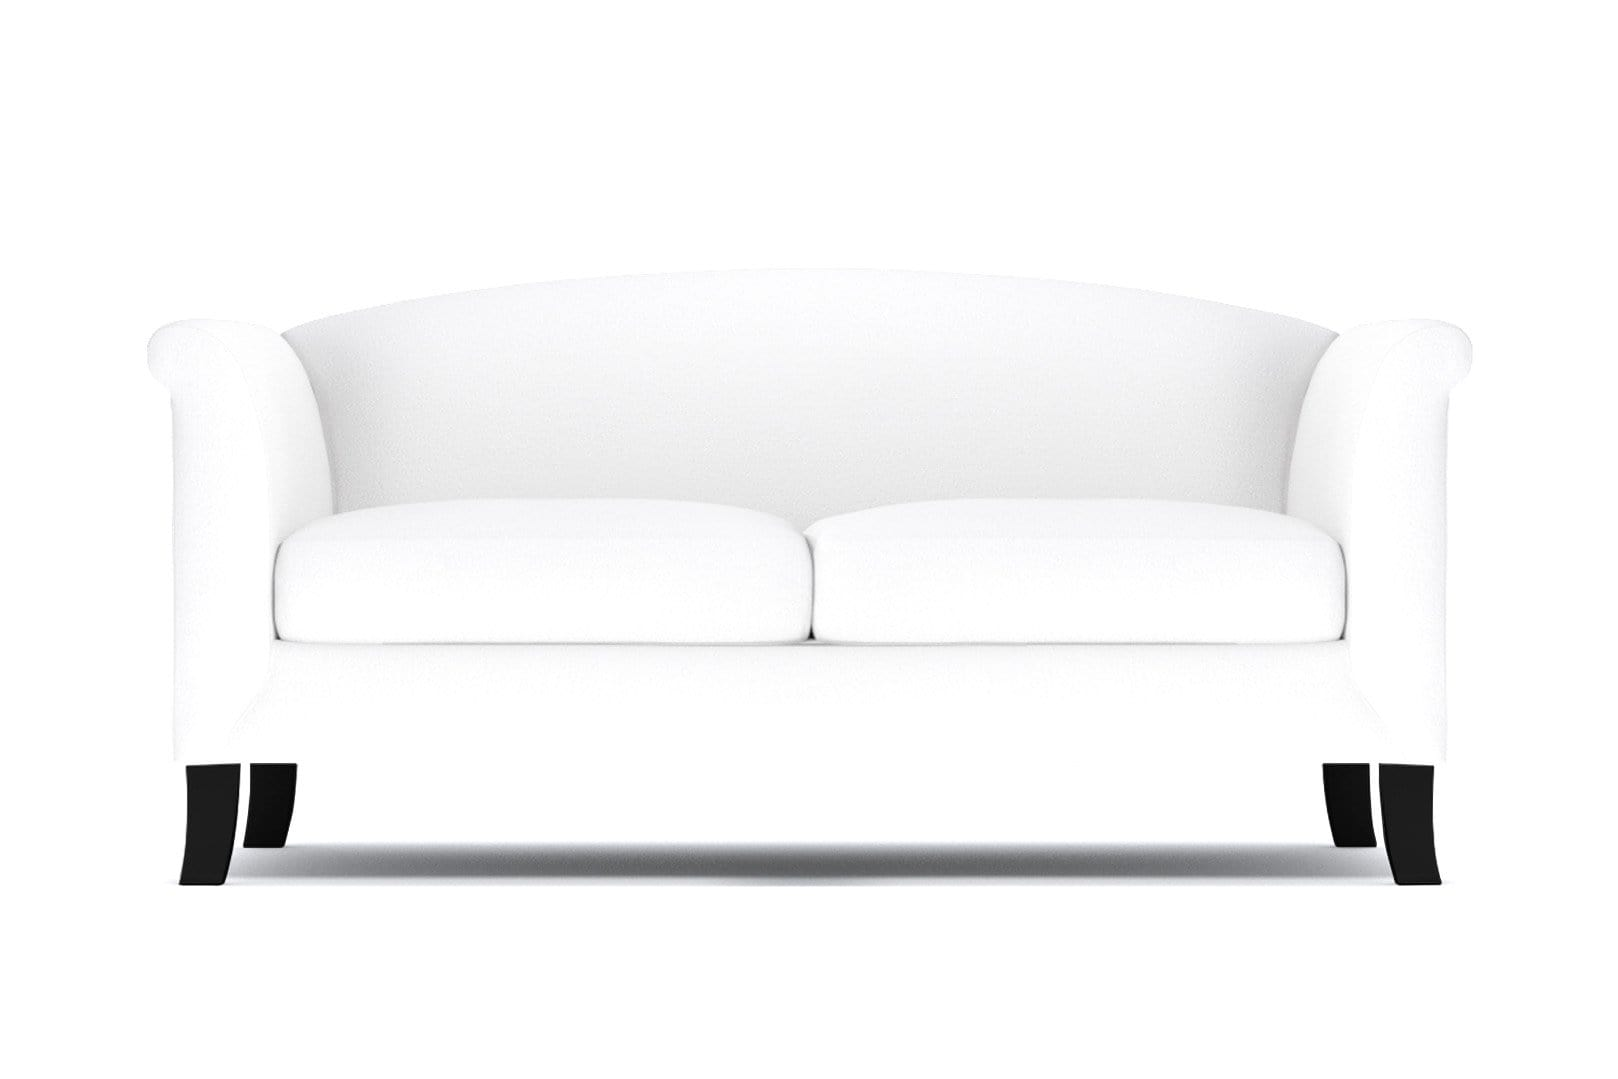 Albright_Apartment_Size_Sofa__White___Small_Space_Modern_Couch_Made_in_the_USA__Sold_by_Apt2B